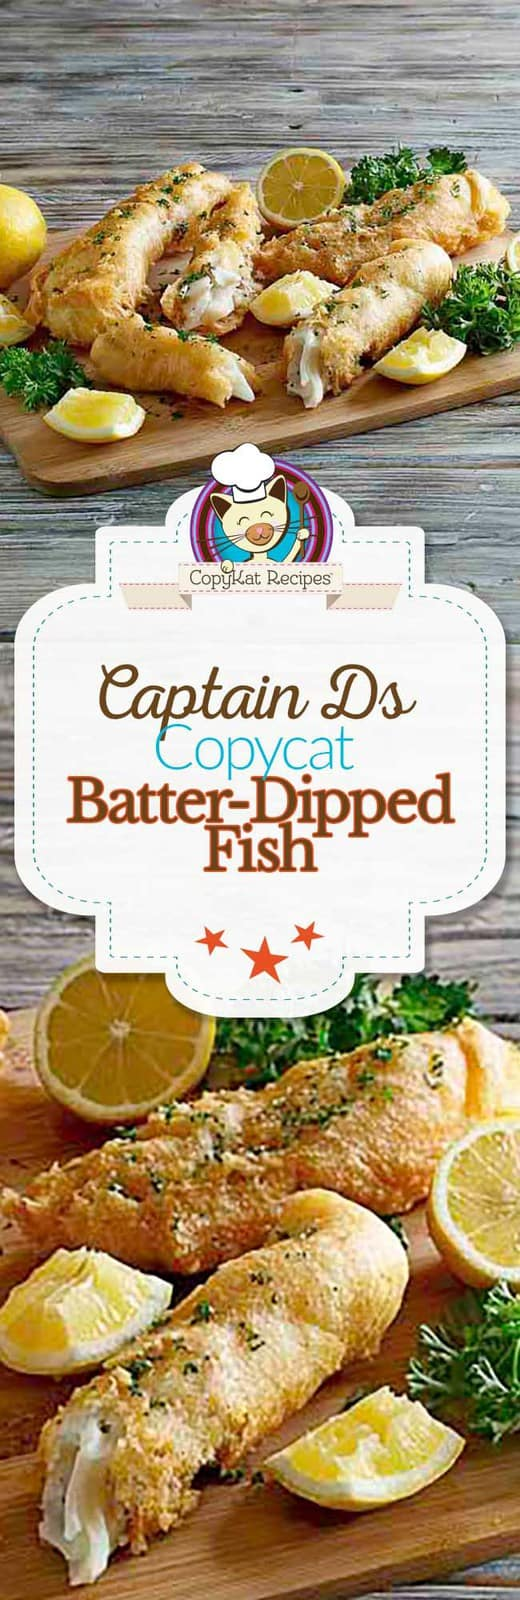 captain ds batter dipped fish